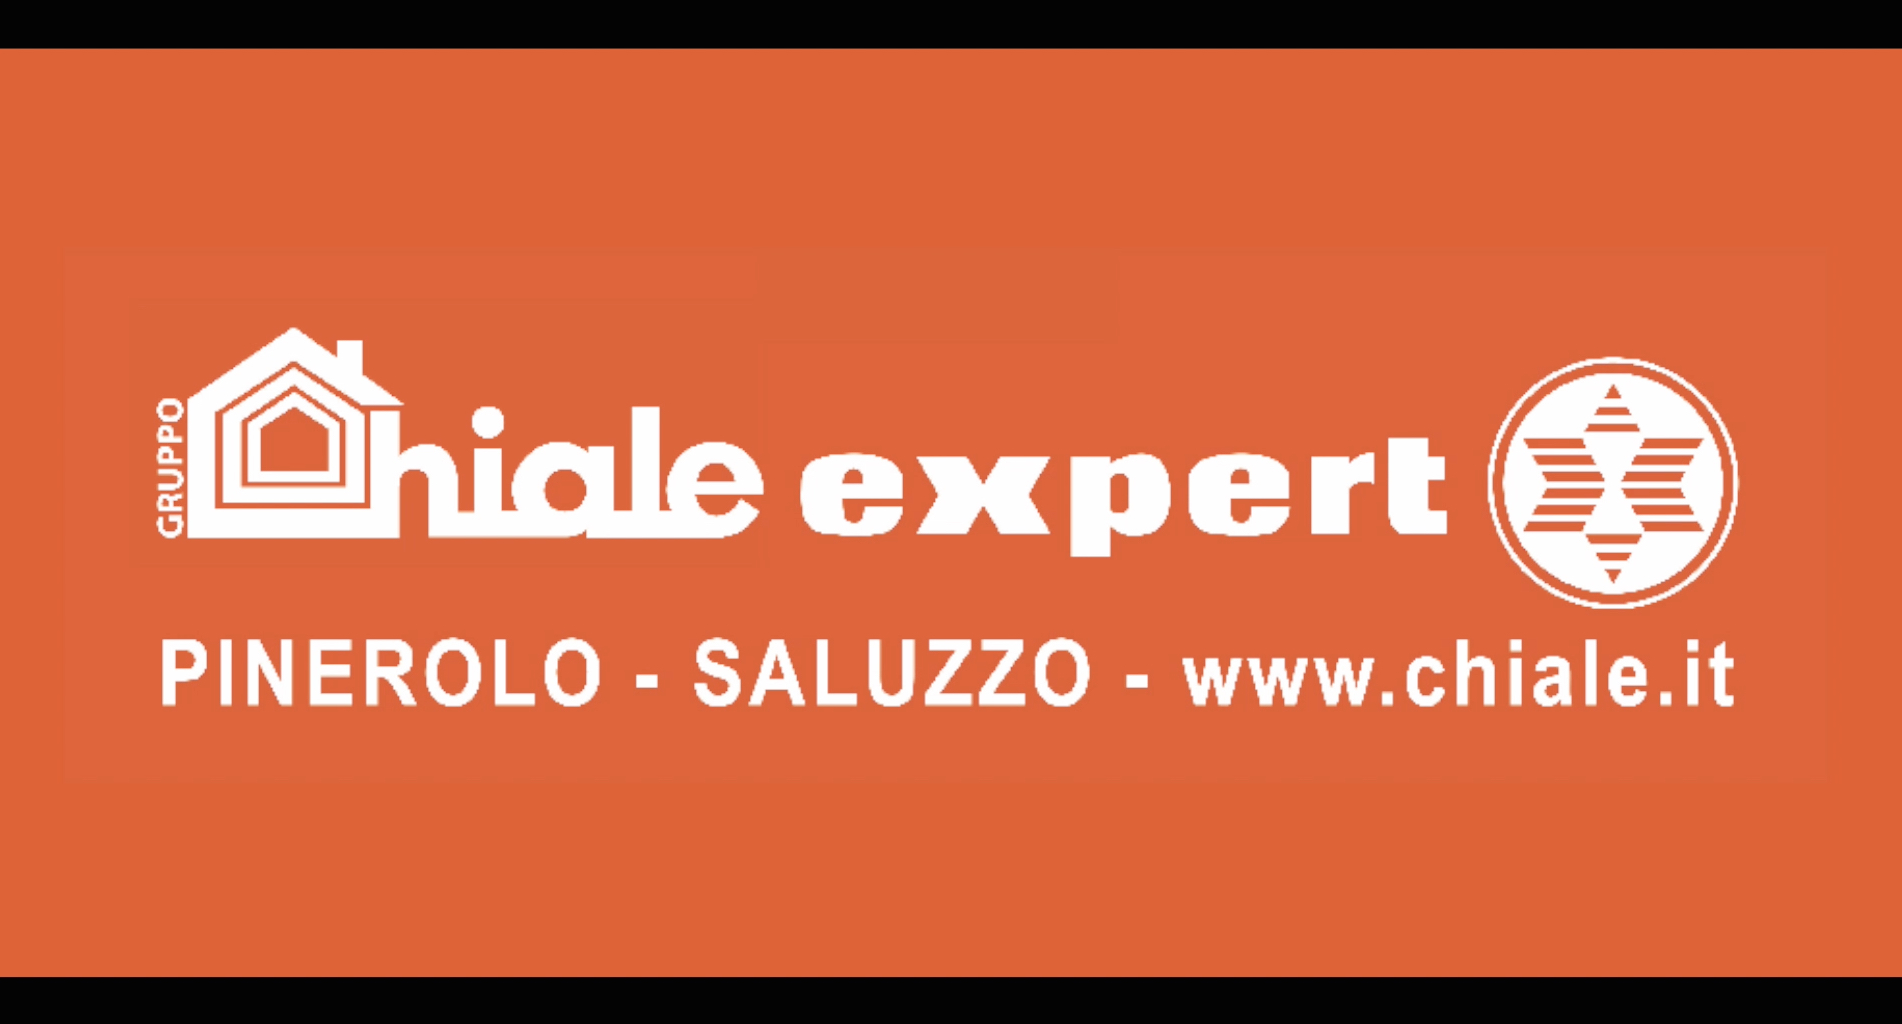 Chiale Expert